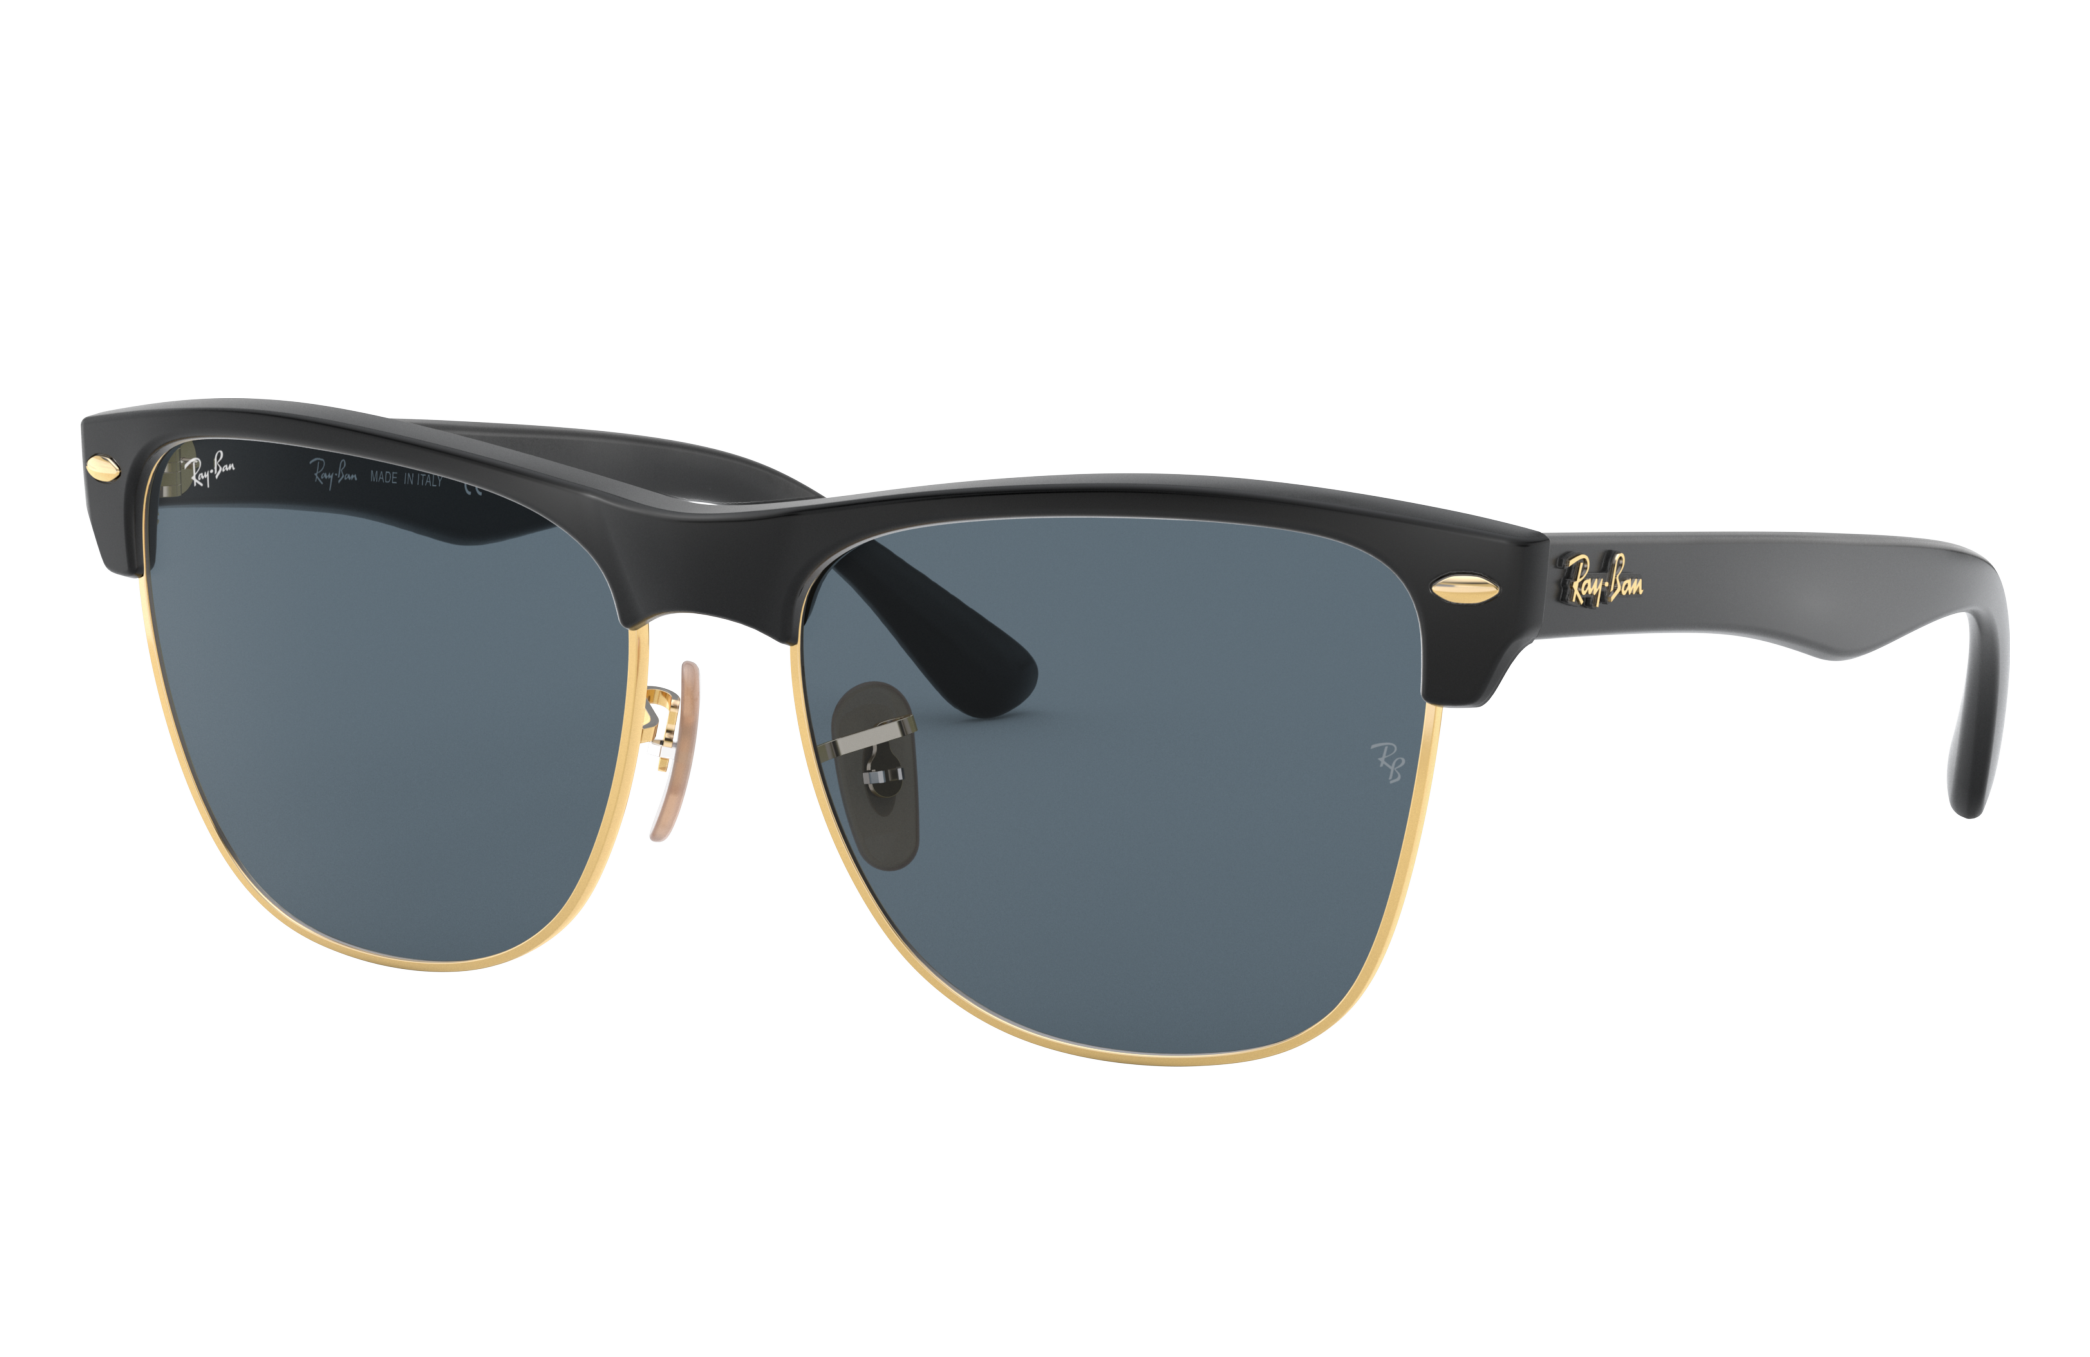 Ray-Ban Clubmaster Oversized @collection Black, Blue Lenses - RB4175